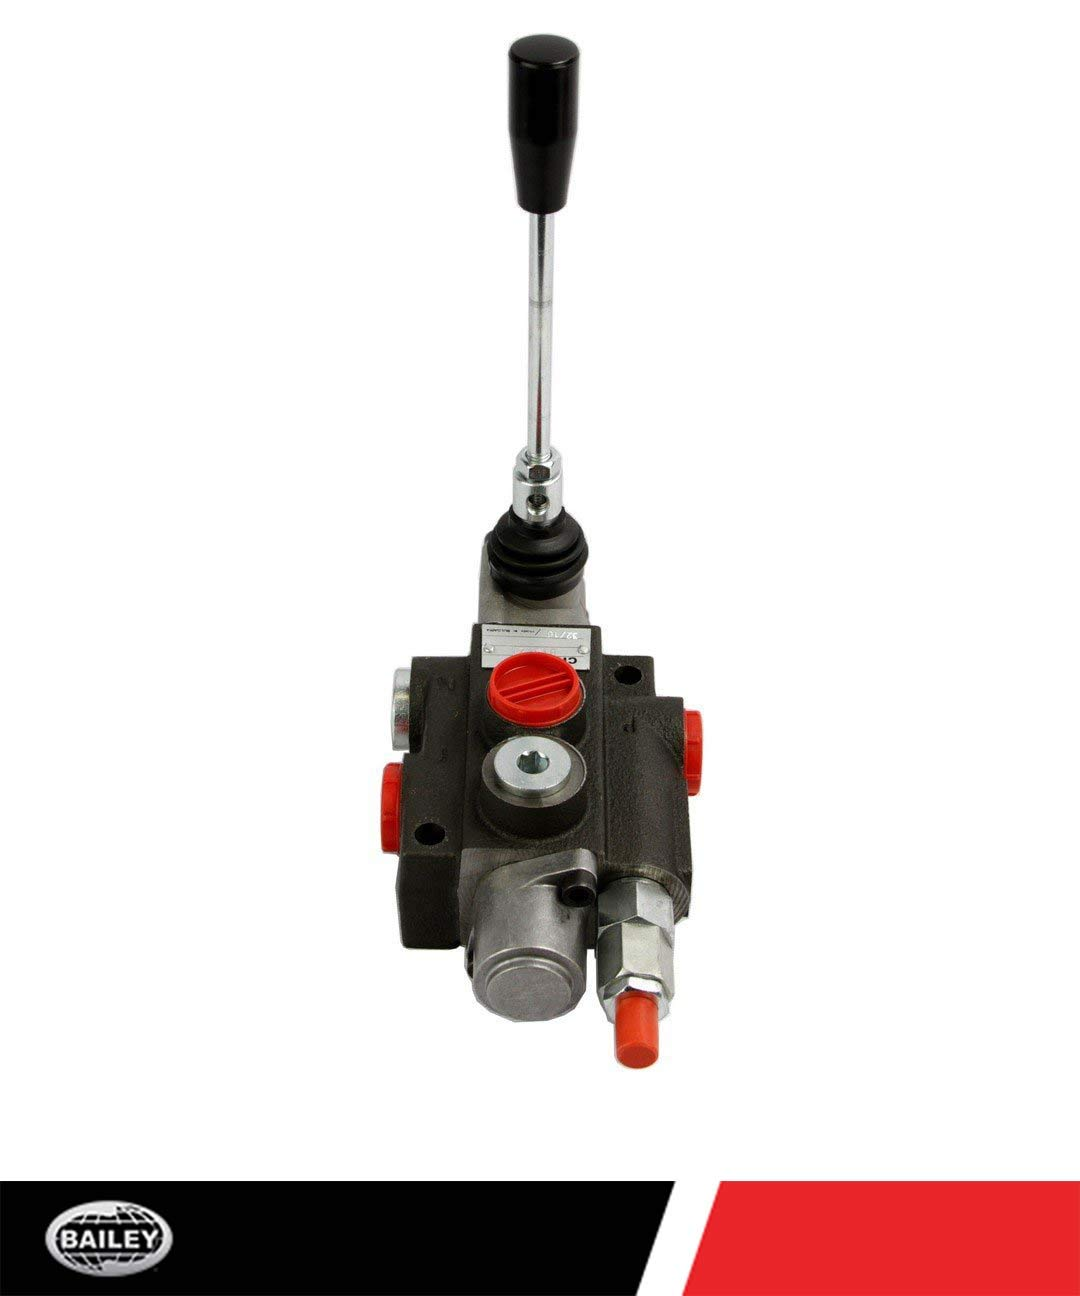 G Series : 10 GPM 220932 Spring Center Action 3625 PSI 1 Spool 3 Way 3 Position and 3-pos SAE 10//10 Inlet//Outlet Ports and SAE 8 Work Ports CHIEF P40 Directional Control Valve